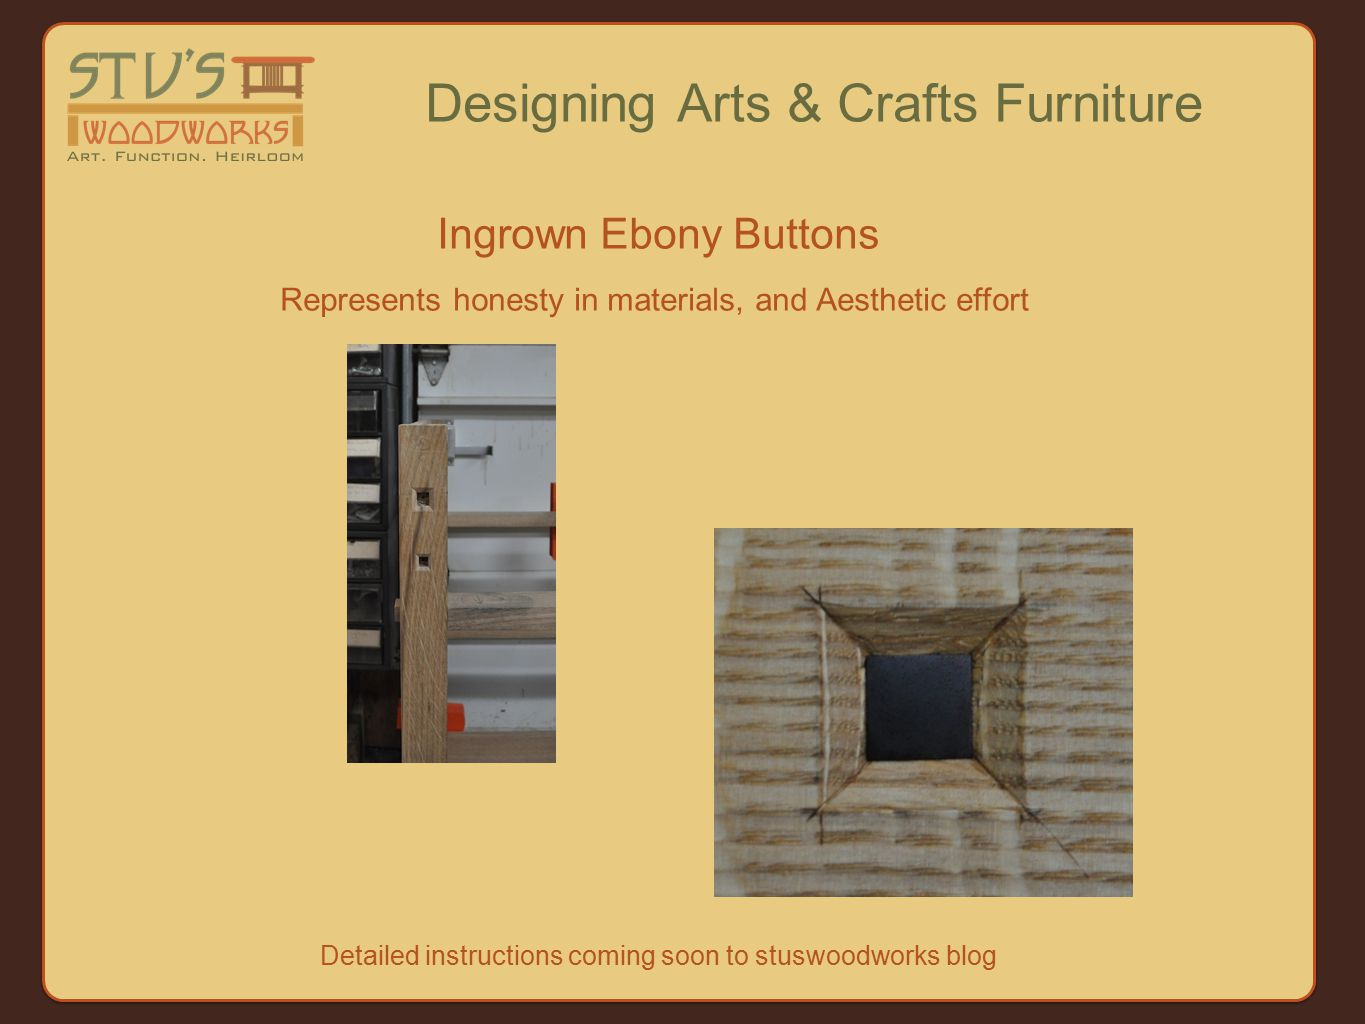 Ingrown Ebony Buttons Designing Arts & Crafts Furniture Represents honesty in materials, and Aesthetic effort Detailed instructions coming soon to stuswoodworks blog